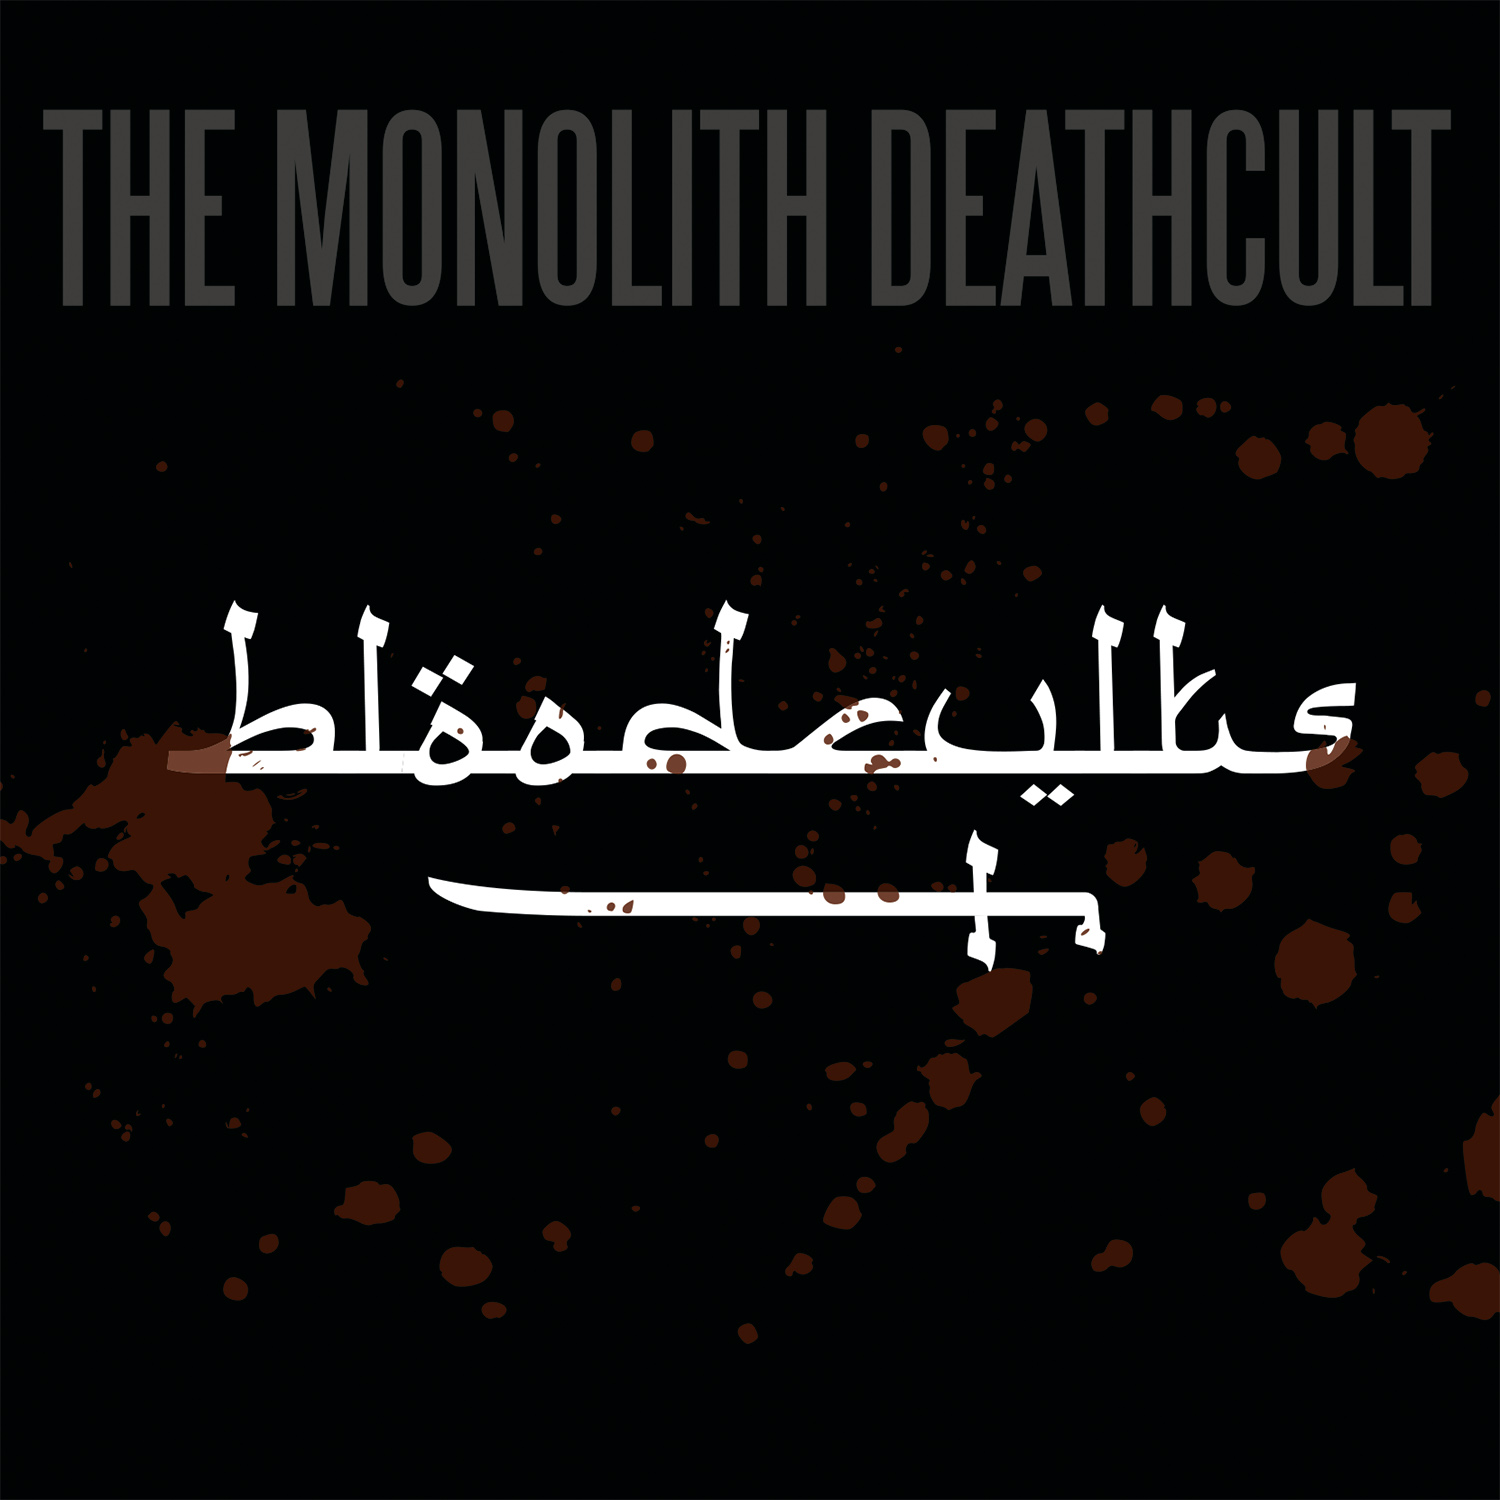 The Monolith Deathcult – Bloodcvlts Review